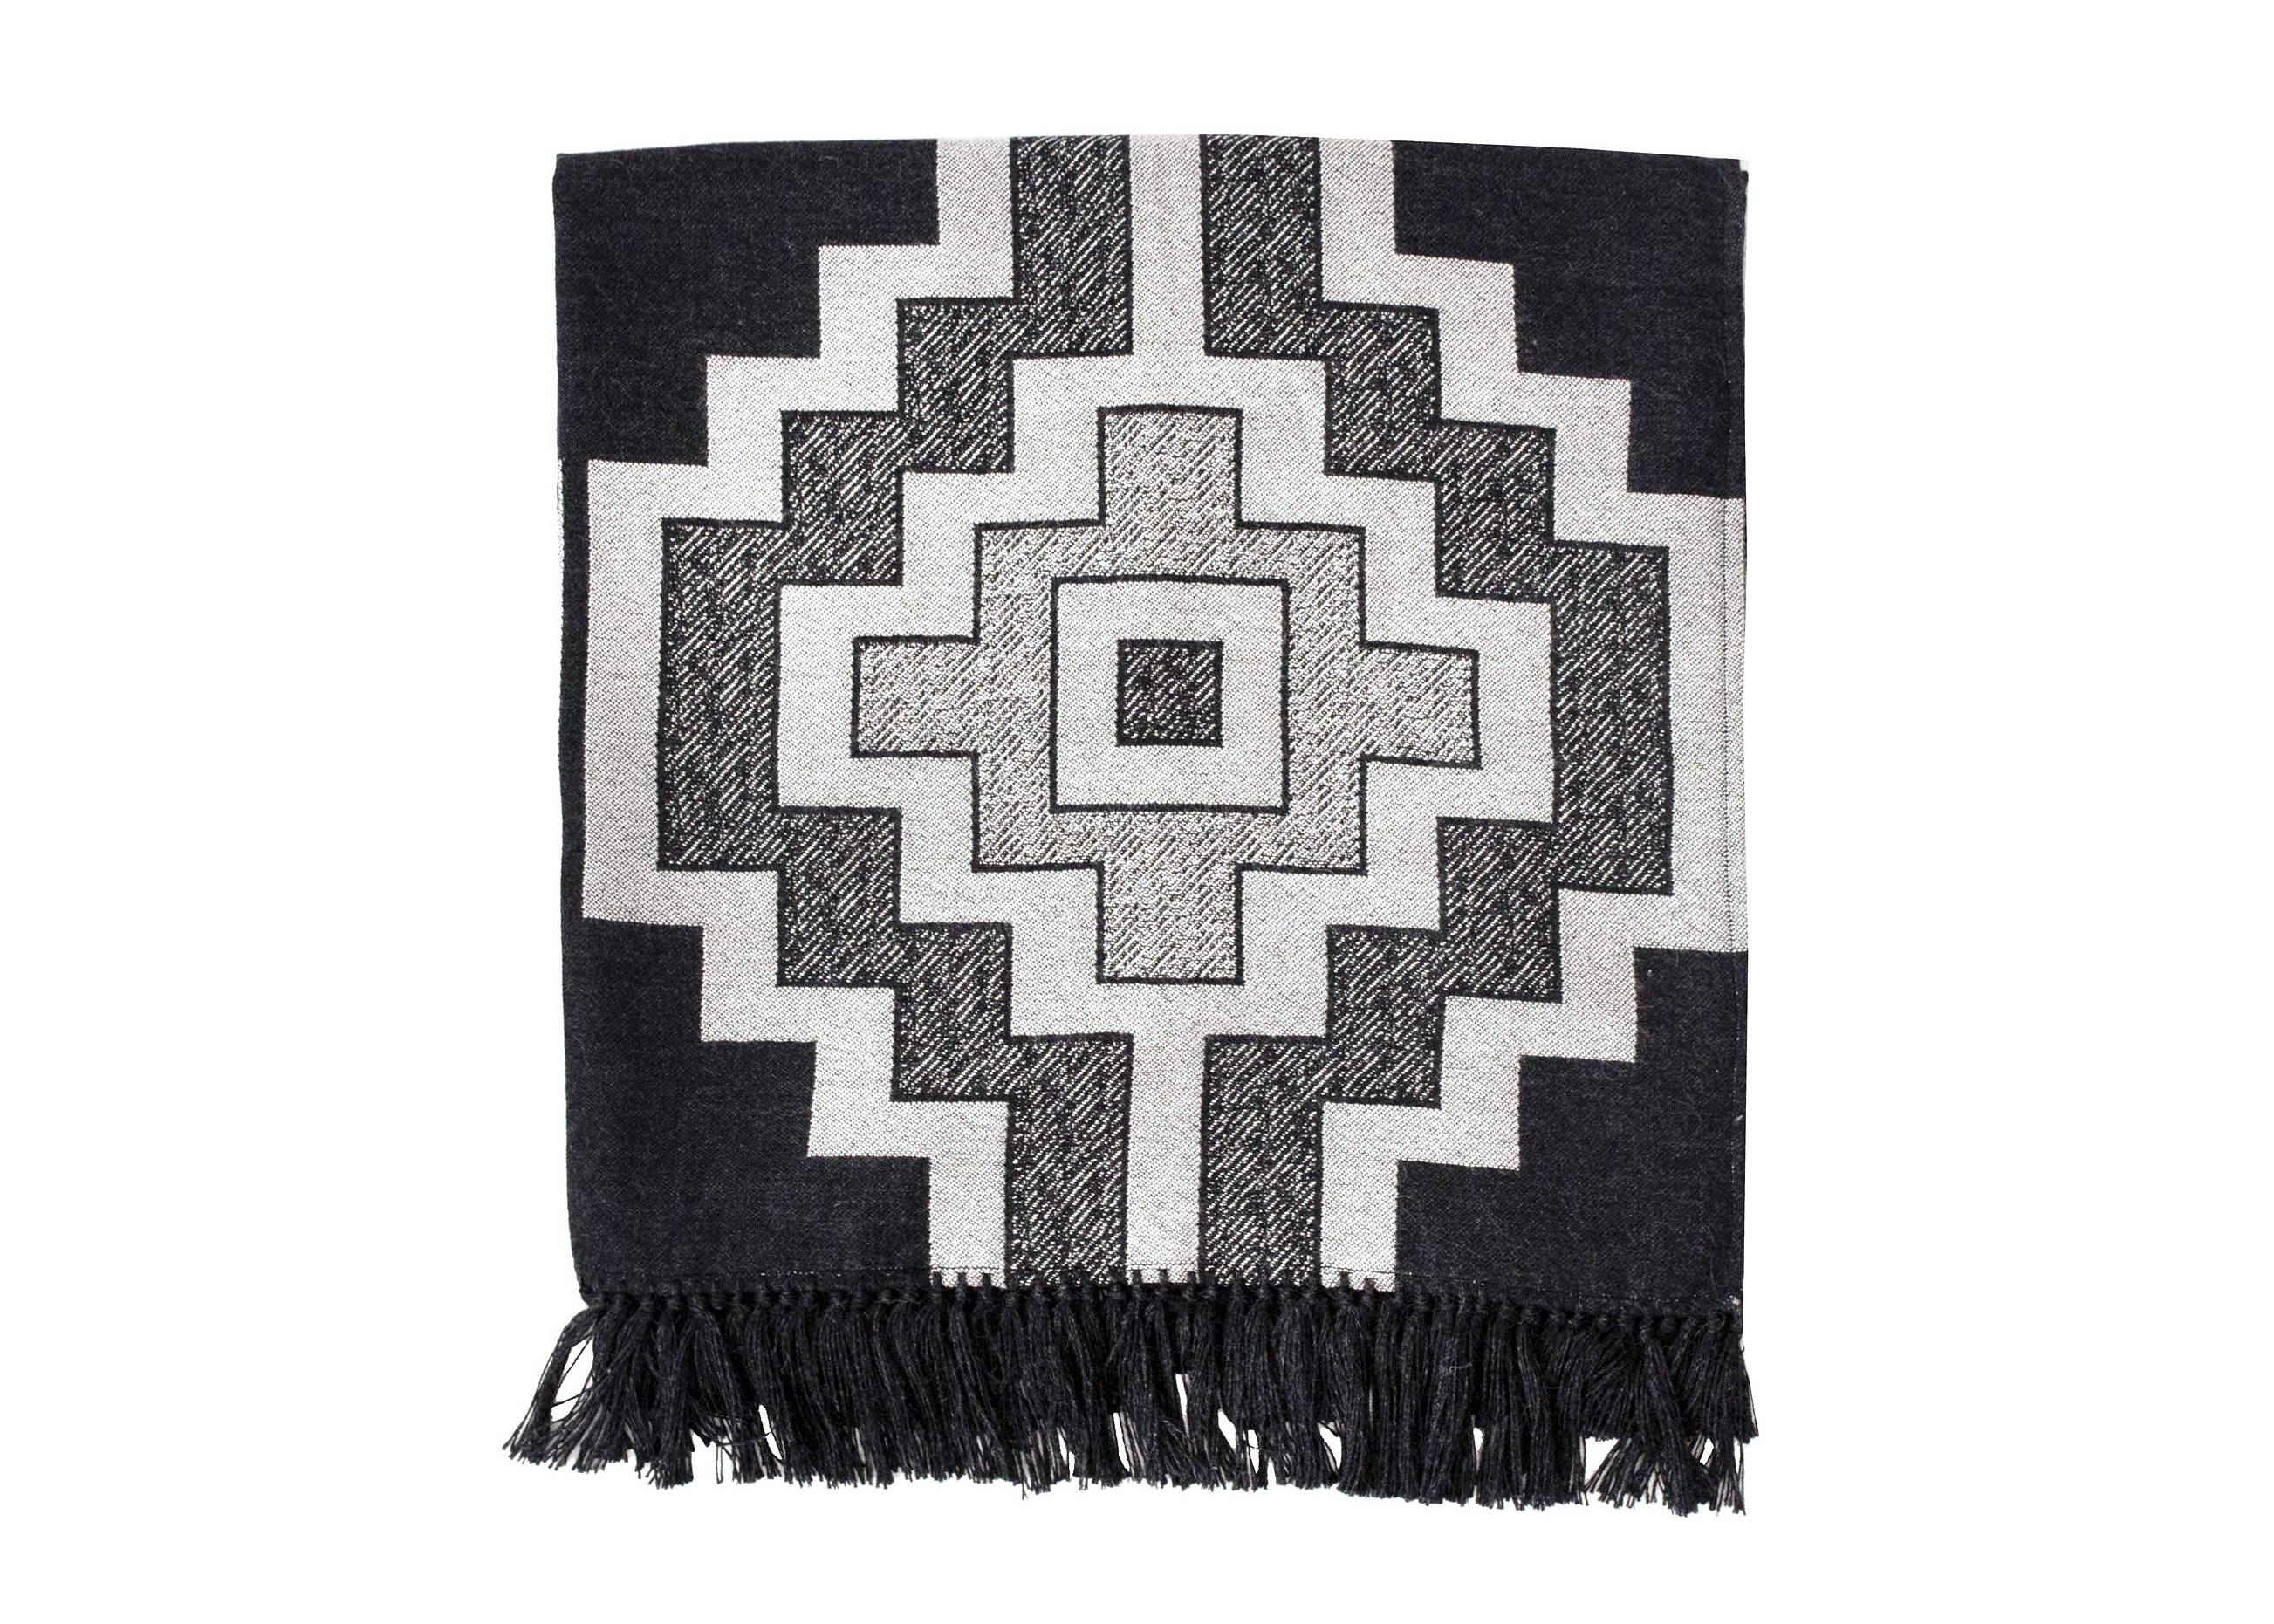 jacquard-loomed Pampa Alpaca Throw Blanket with pampa motif - Stick & Ball